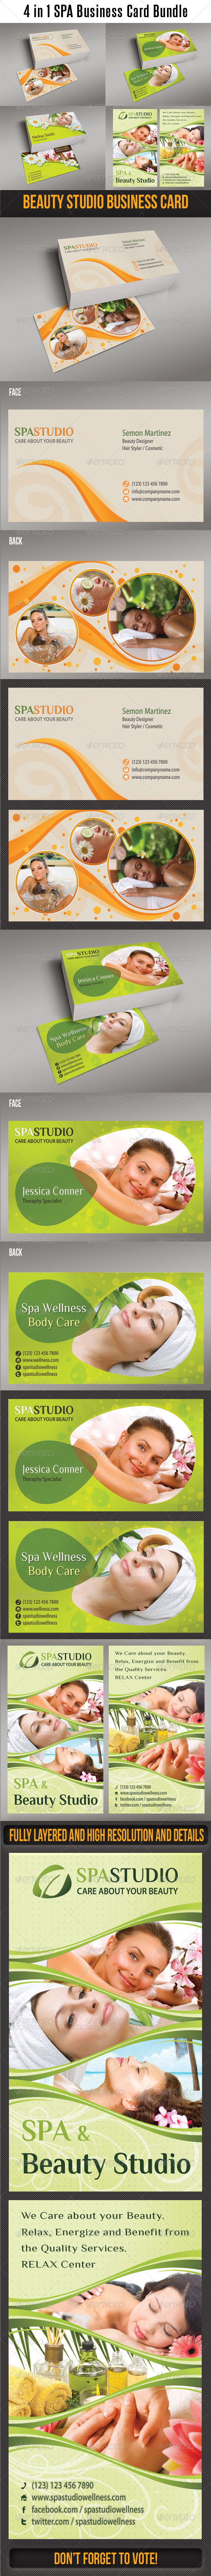 GraphicRiver 4 in 1 Spa Wellness Business Card Bundle 6619083